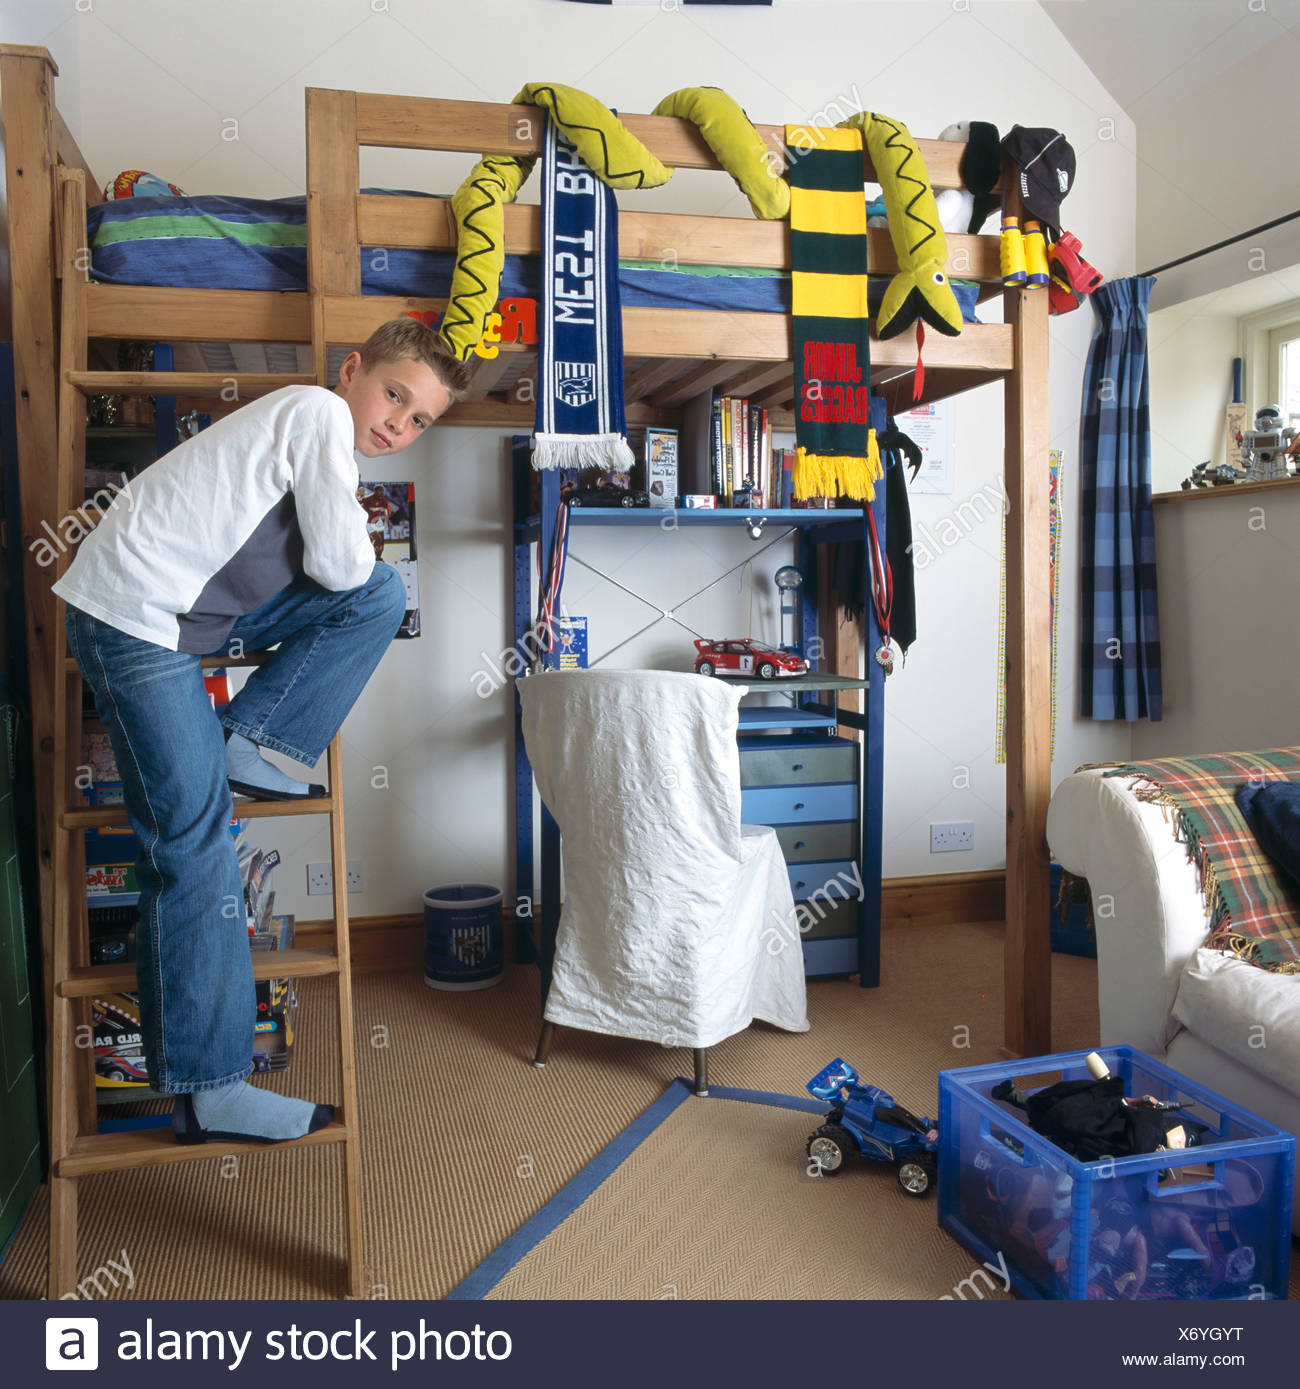 Teenage Bedroom Bunk High Resolution Stock Photography And Images Alamy